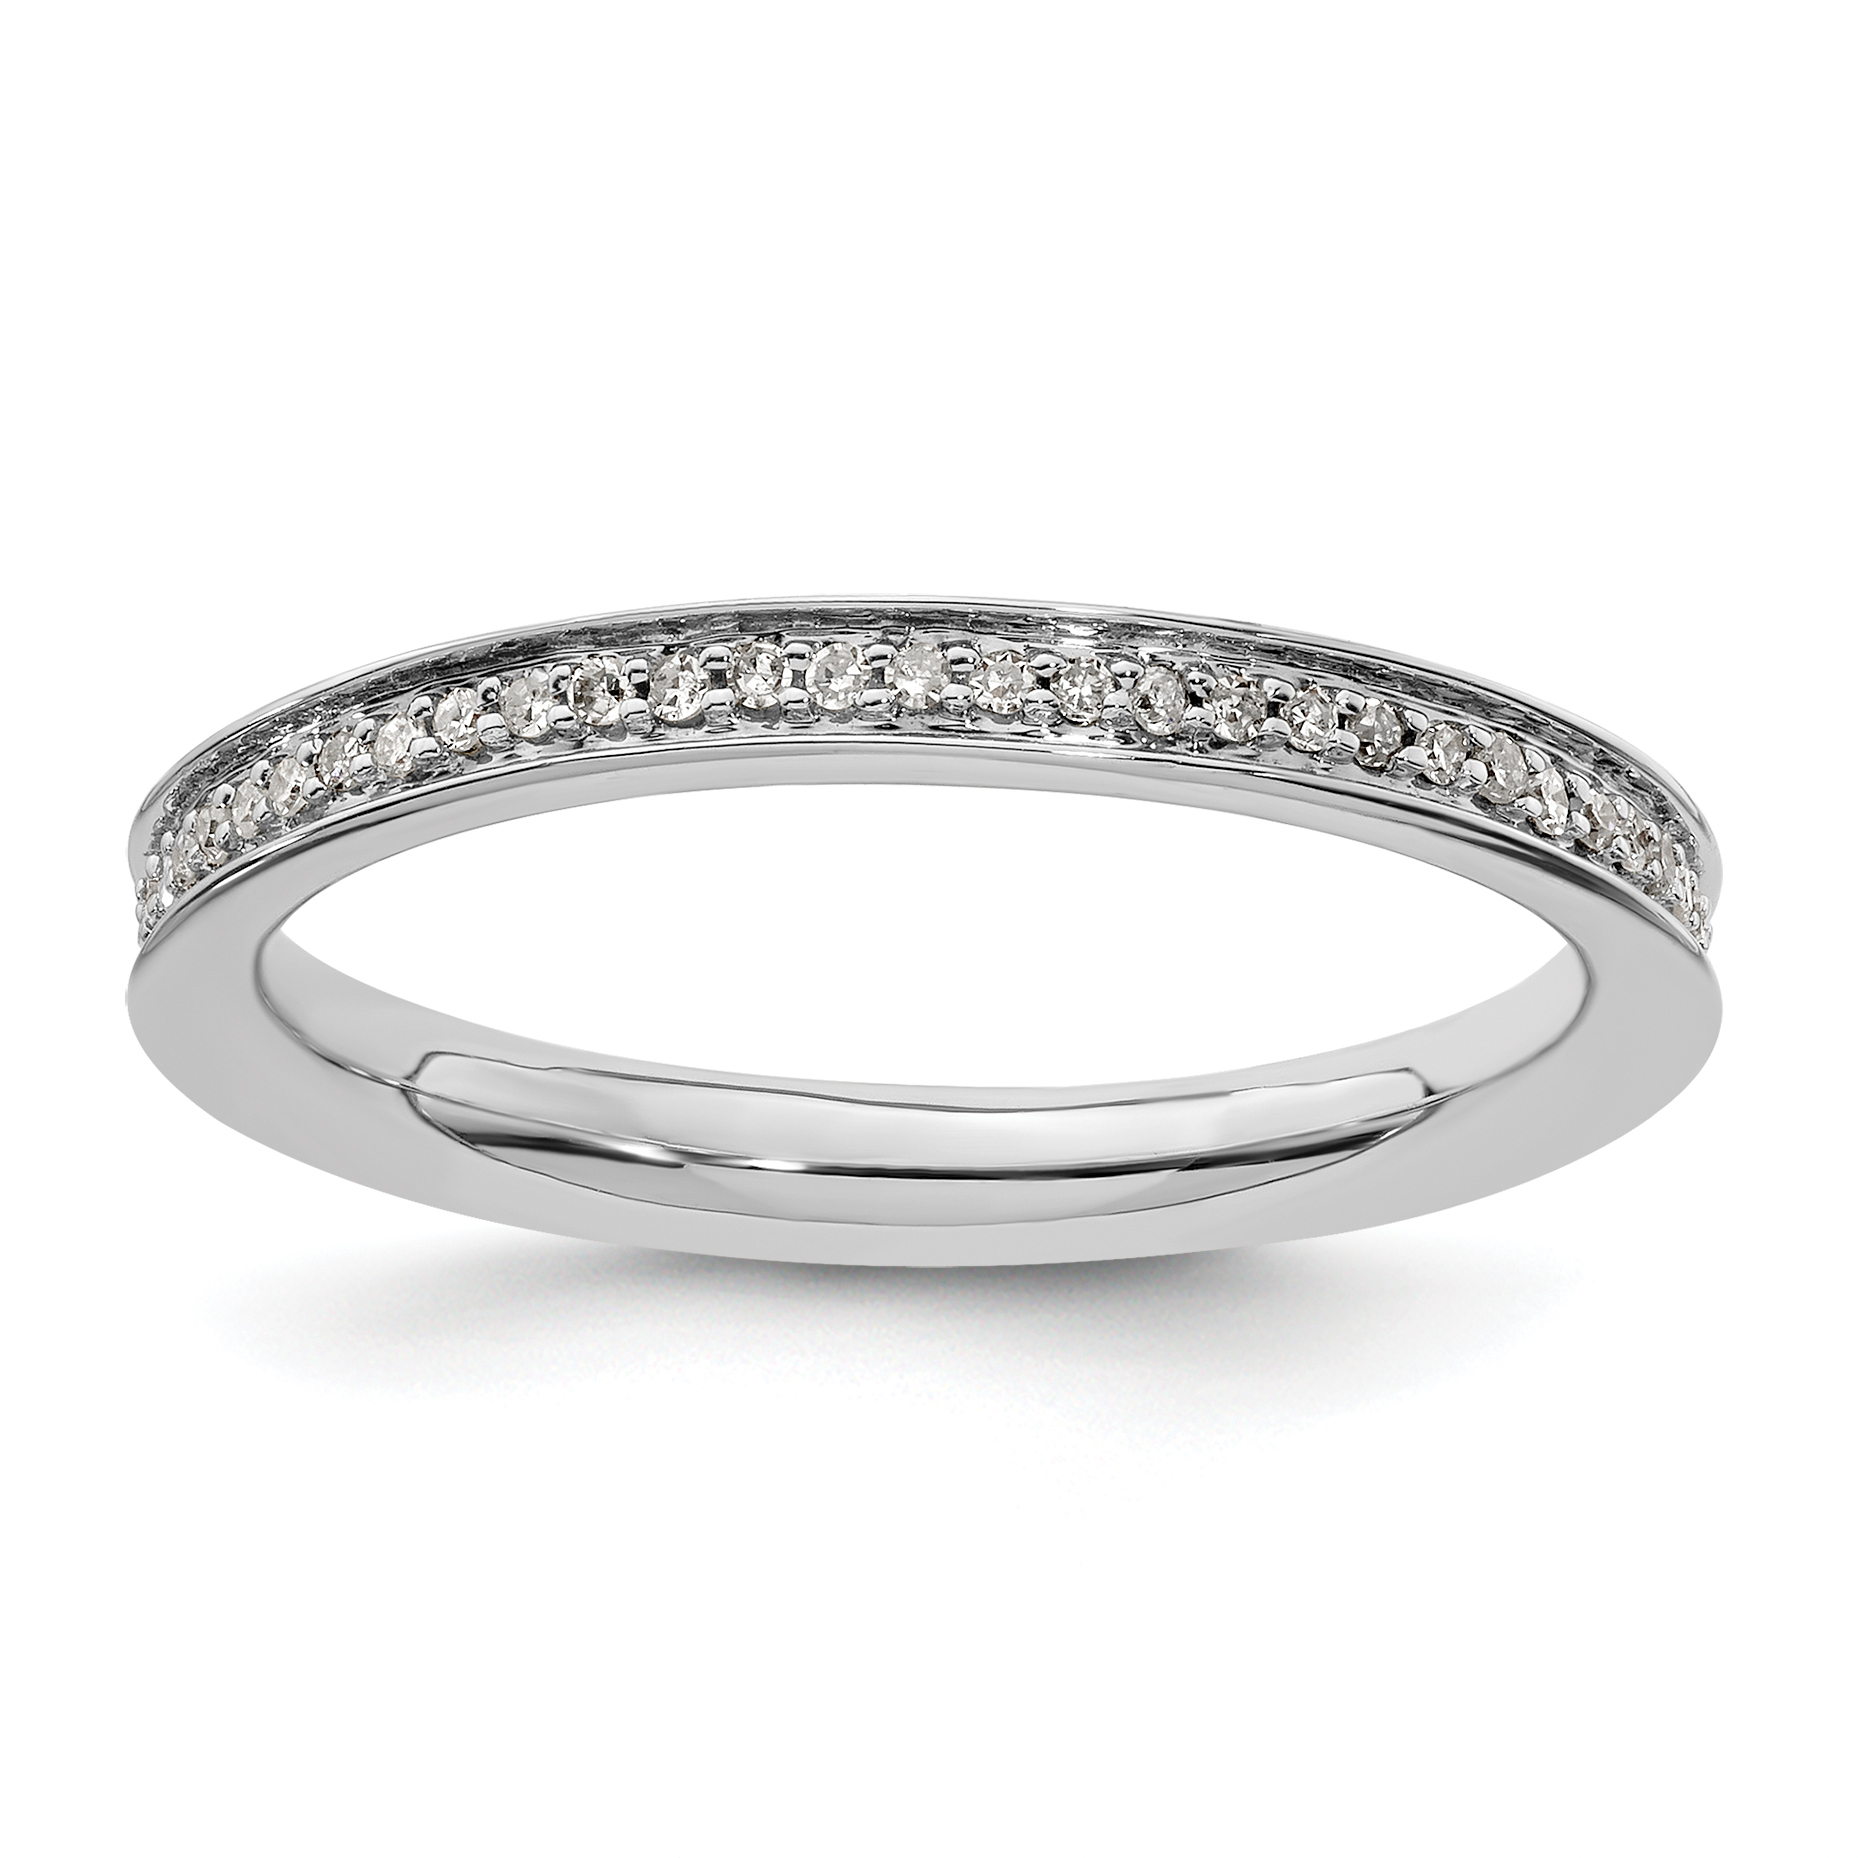 Sterling Silver Eternity Ring Solid Polished Rhodium 2.25 mm 2.25 mm Stackable Expressions Diamond Ring